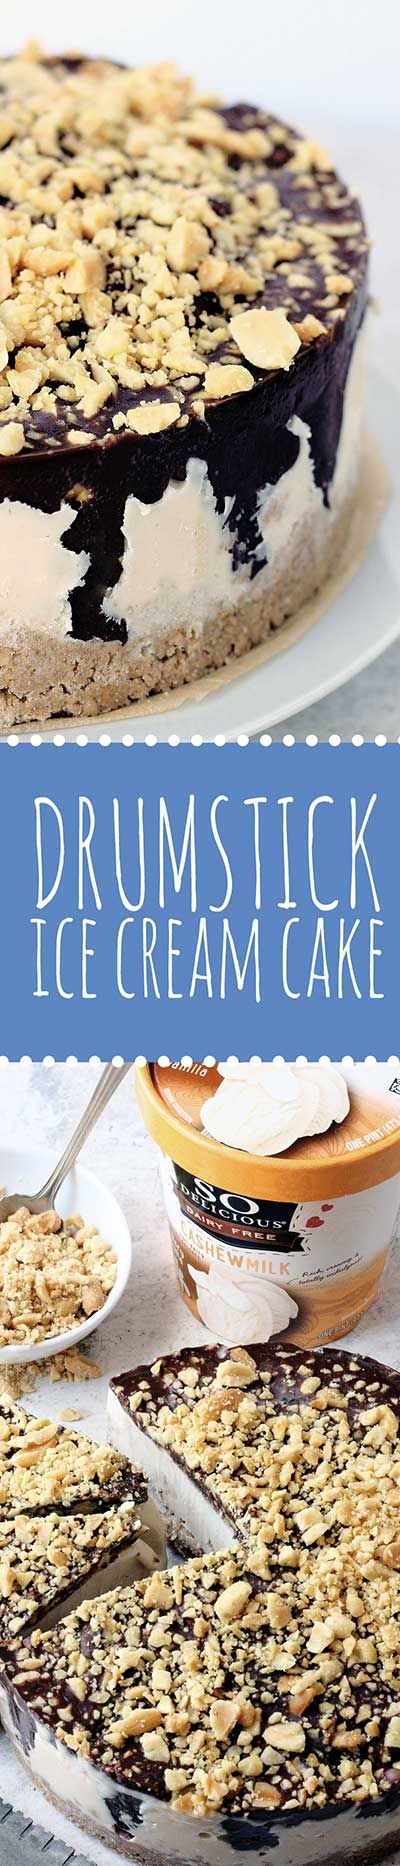 The Drumstick Ice Cream Cake — A summer classic recreated. Dairy-Free, Gluten-Free & Vegan! @floandgracemag